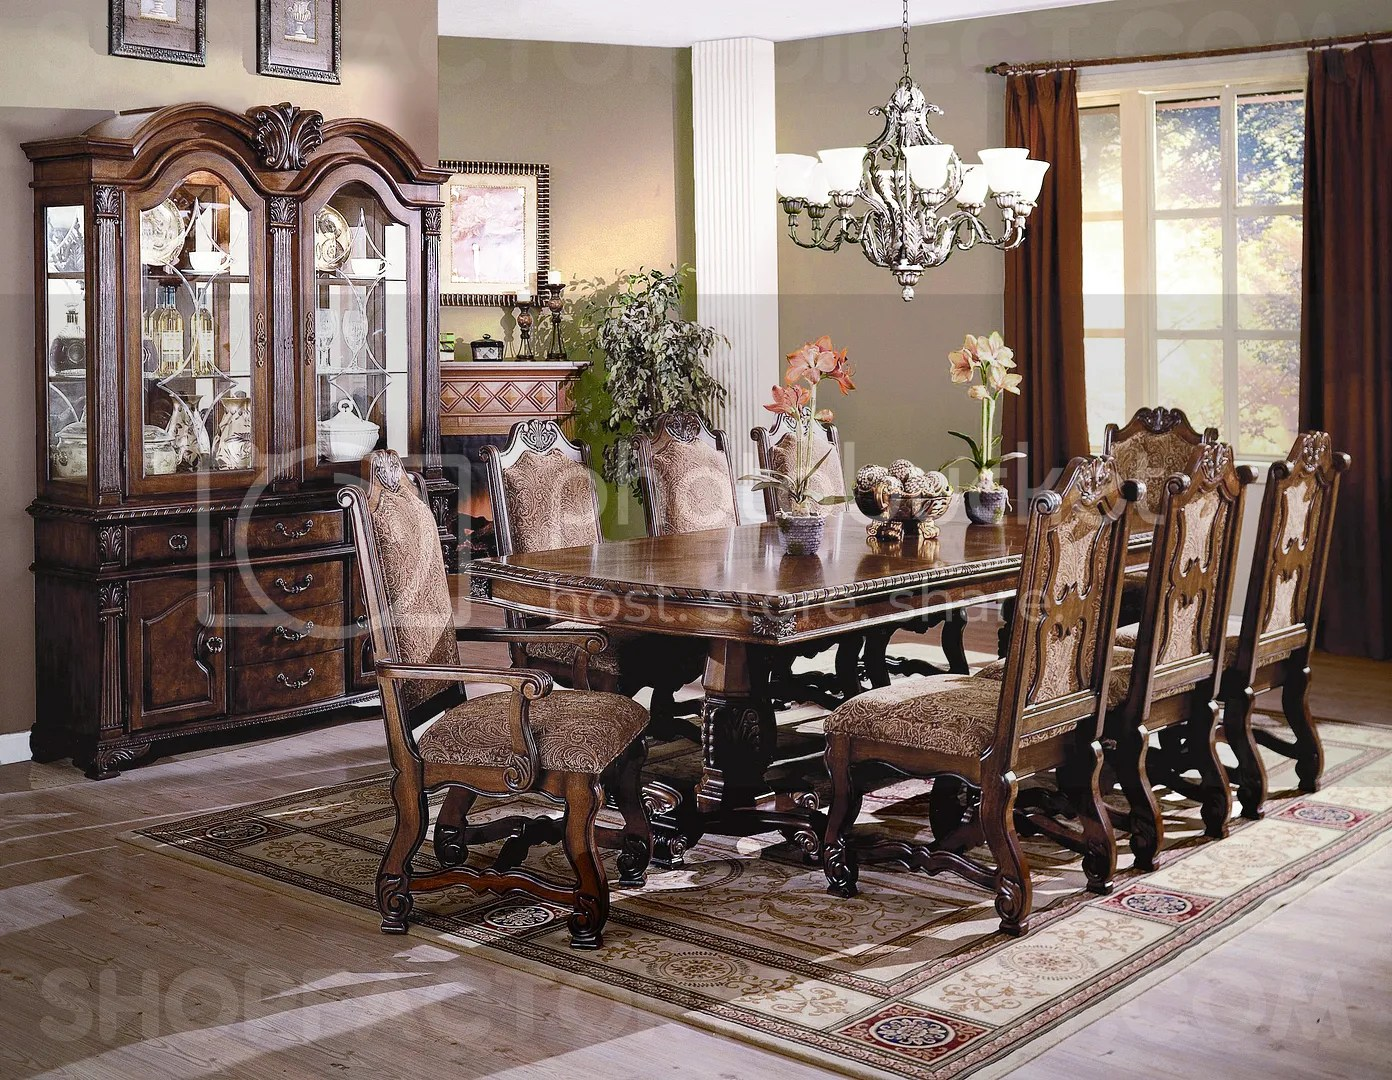 Lounche Dining Set Neo Renaissance Formal Dining Room Furniture Set With